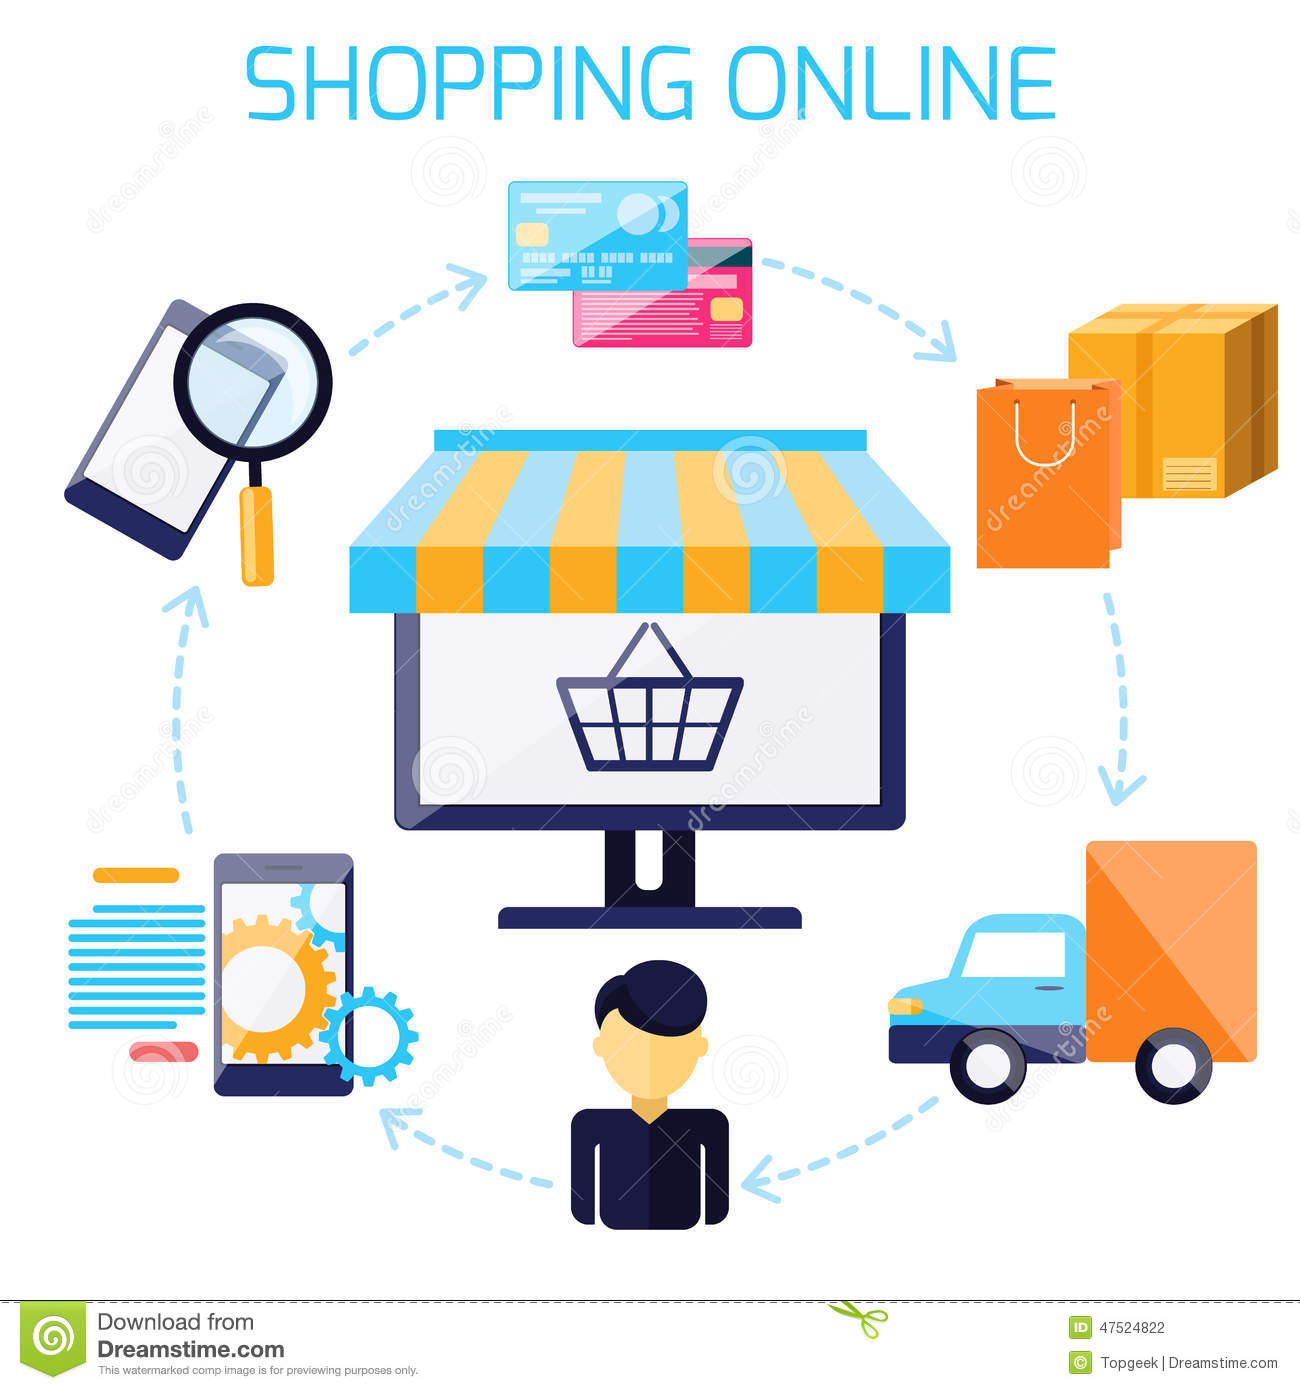 infographic-sequence-online-shopping-steps-internet-market-includes-internet-connection-searching-payment-packaging-47524822.jpg